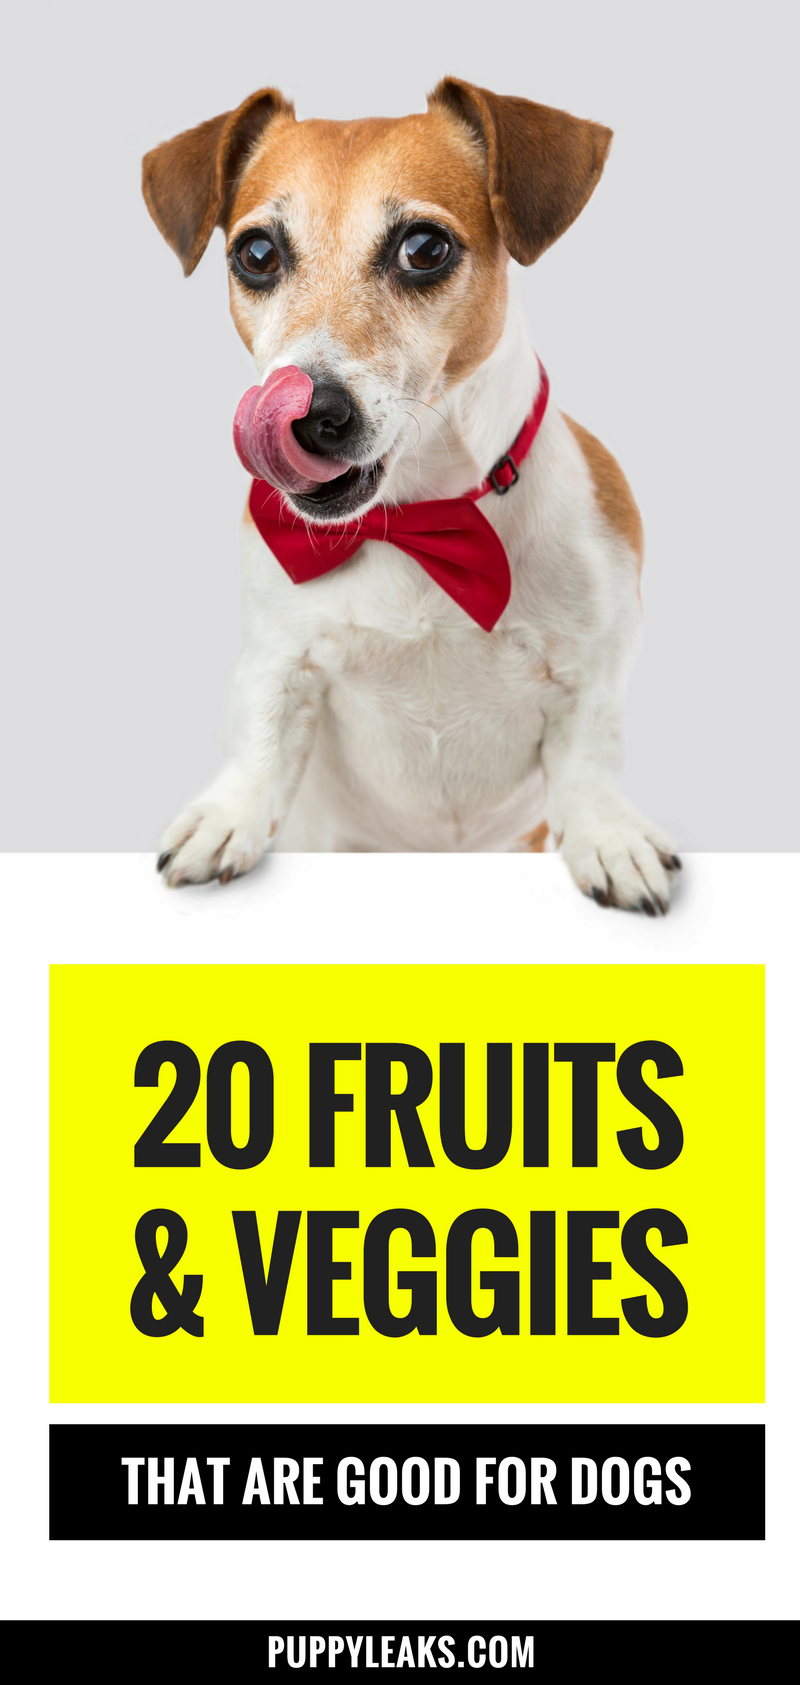 20 fruits & veggies that are good for your dog. Fruits & veggies that are safe for your dog and make healthy treats.